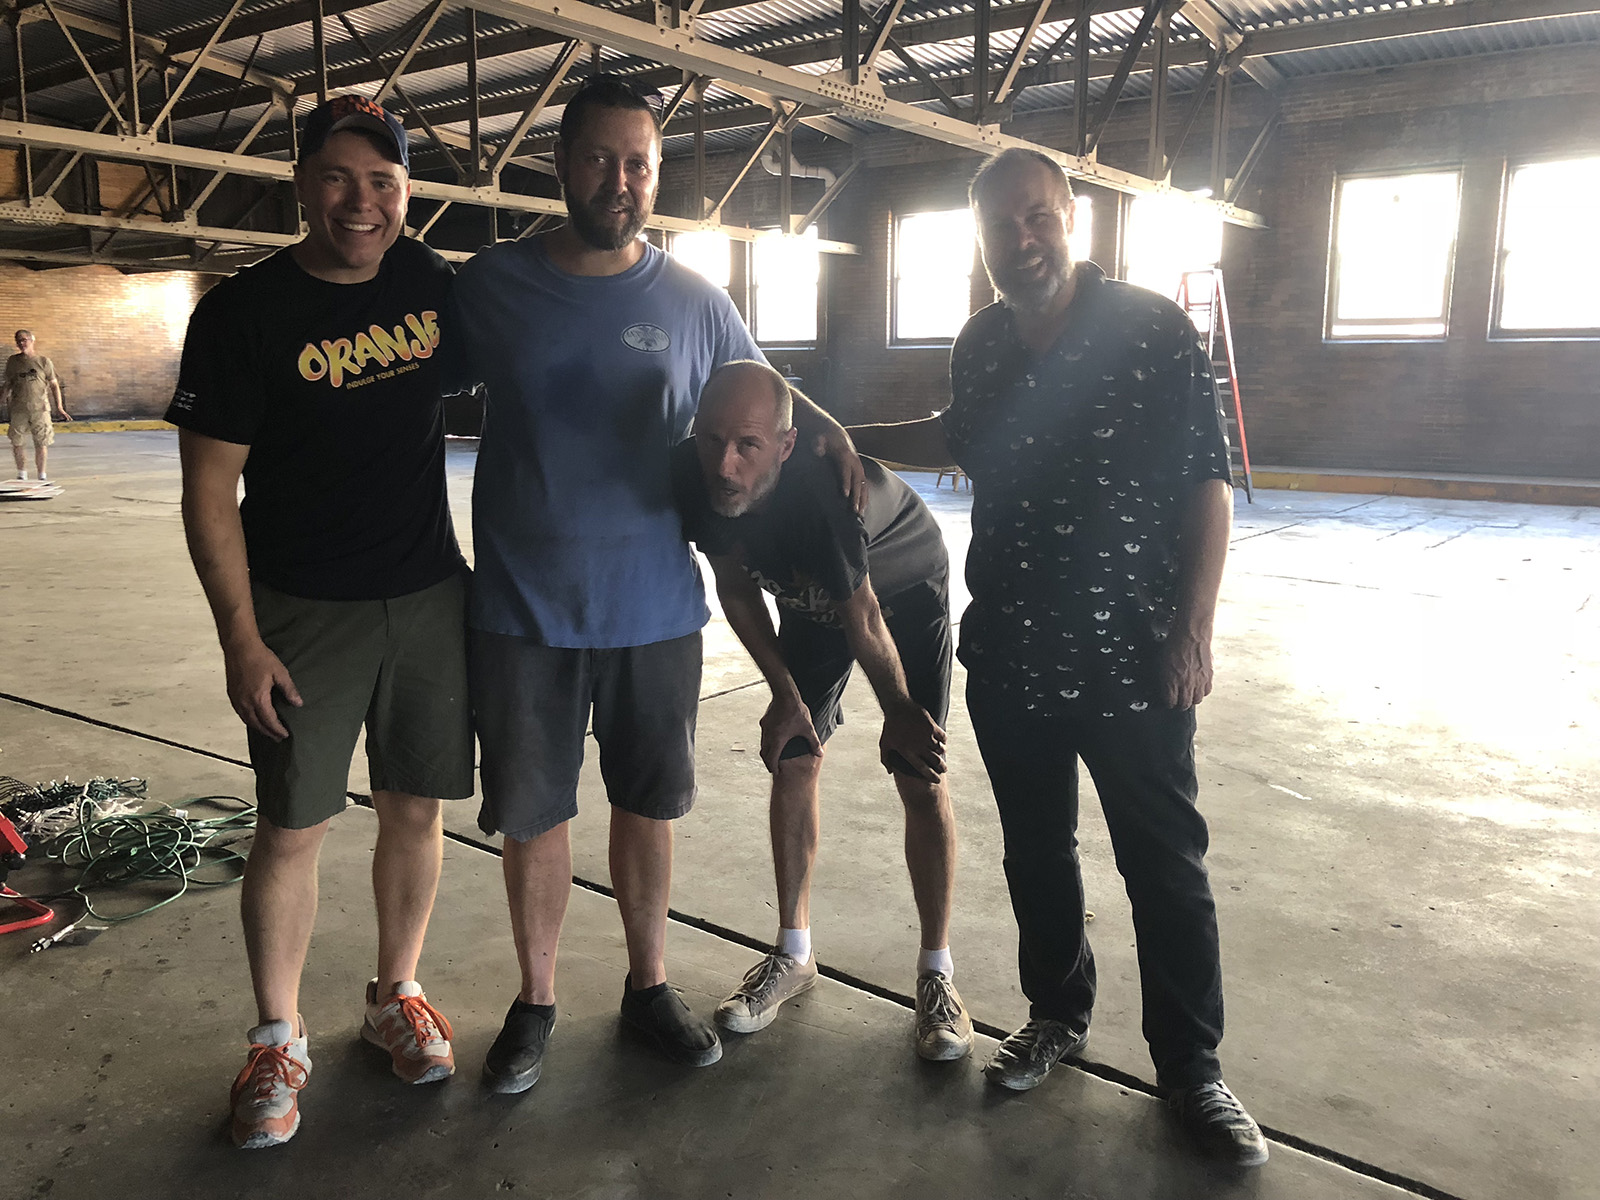 Me, Luke Crawley, Quincy Owens, & Kyle Ragsdale.. at this point I think we all felt like Quincy, but he has to be one of the hardest working artists in Indy and he often doesn't show it. We all busted our ass to pull this event off and I was extremely honored to play a small role in the events success.